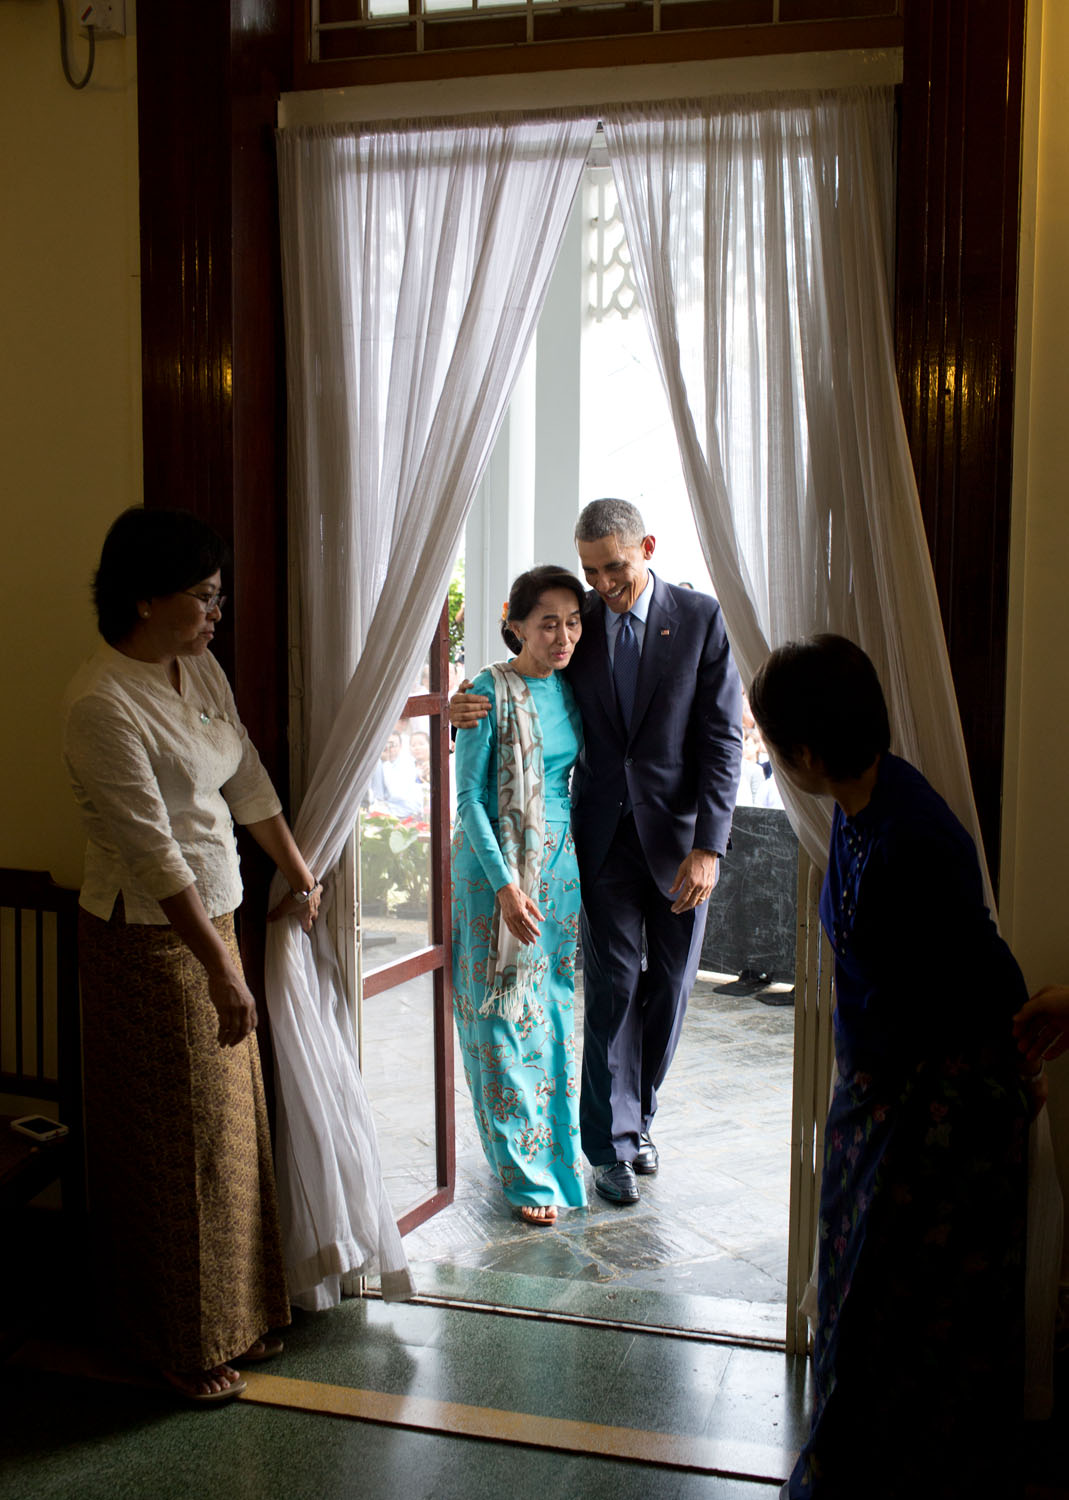 President Obama Meets with Aung San Suu Kyi